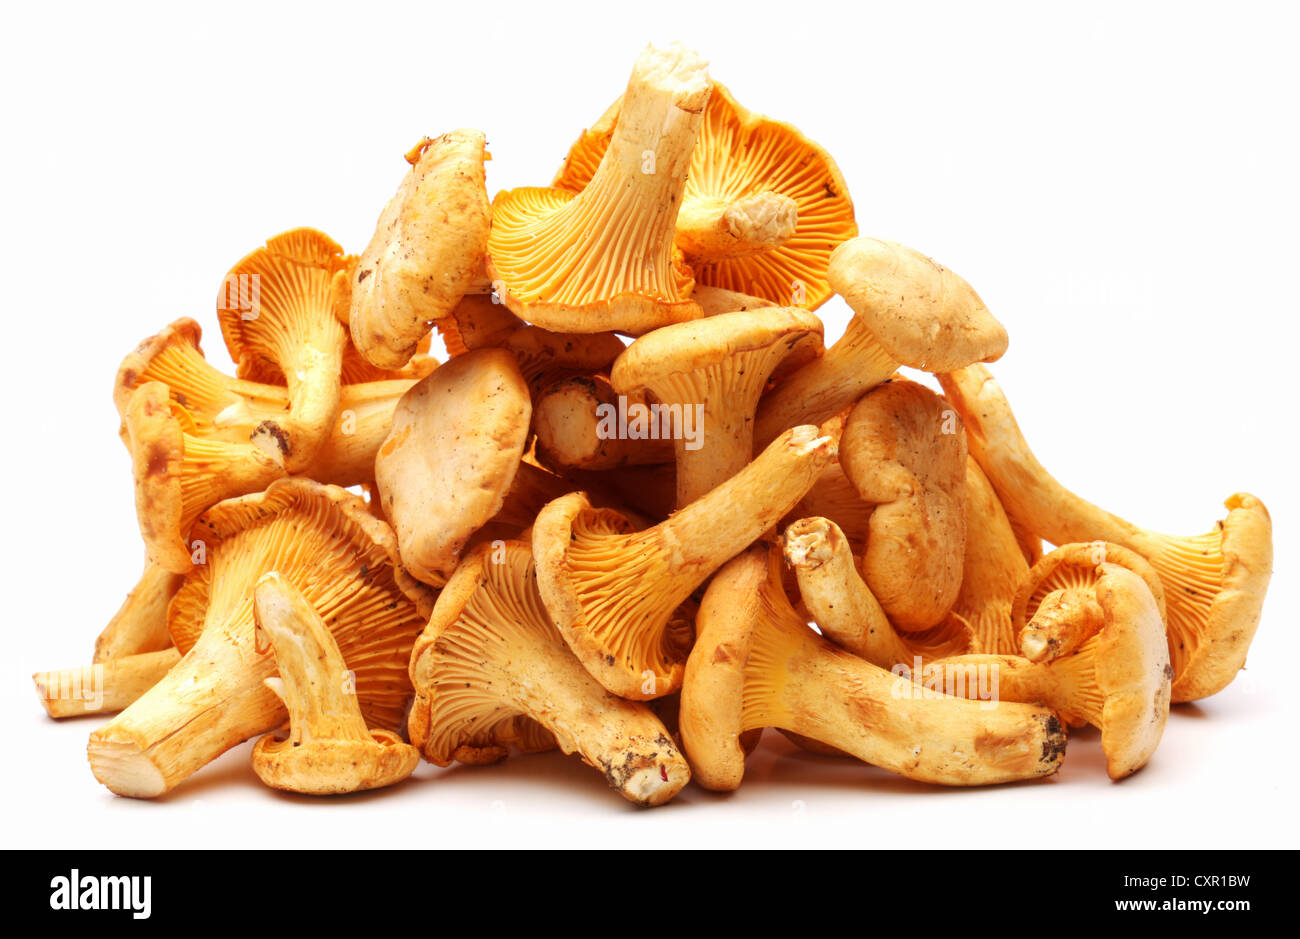 Chanterelles mushrooms on a white background. - Stock Image